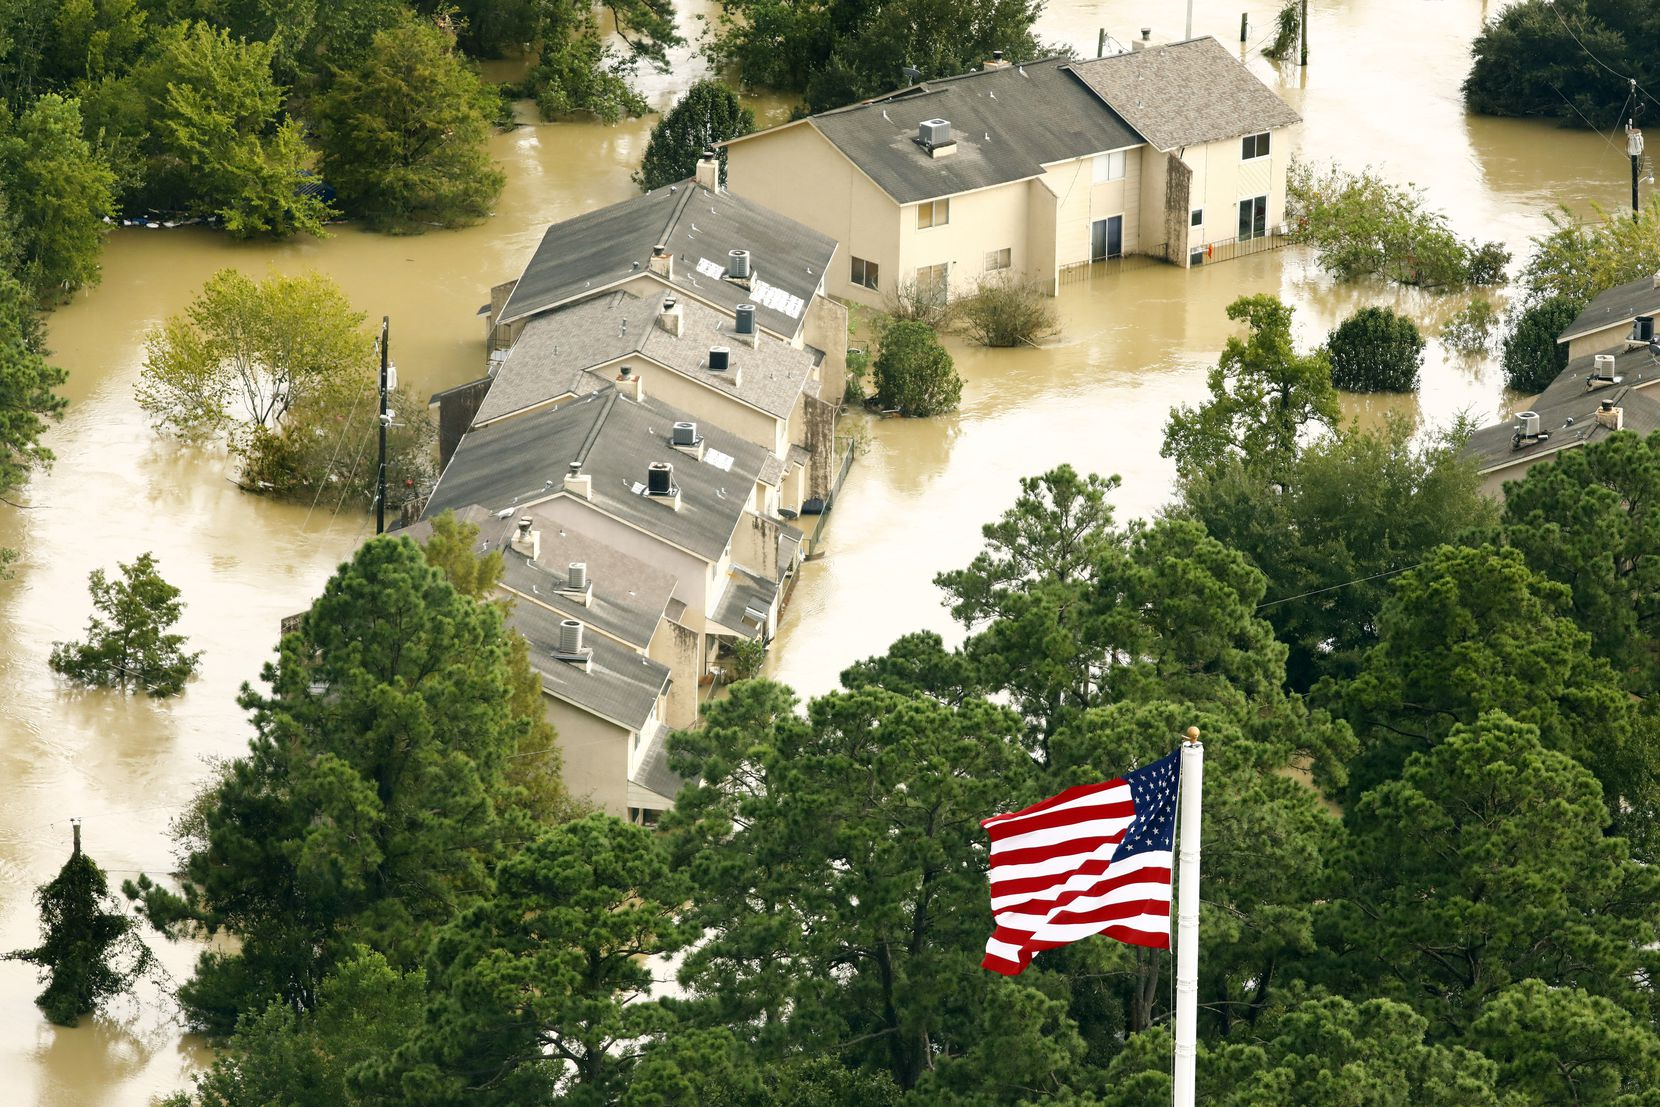 The U.S. flag flies before flooded condo buildings sitting in the the overflowing San Jacinto River in Humble, Texas, Wednesday, August 30, 2017. Hurricane Harvey inundated the Houston area with several feet of rain.